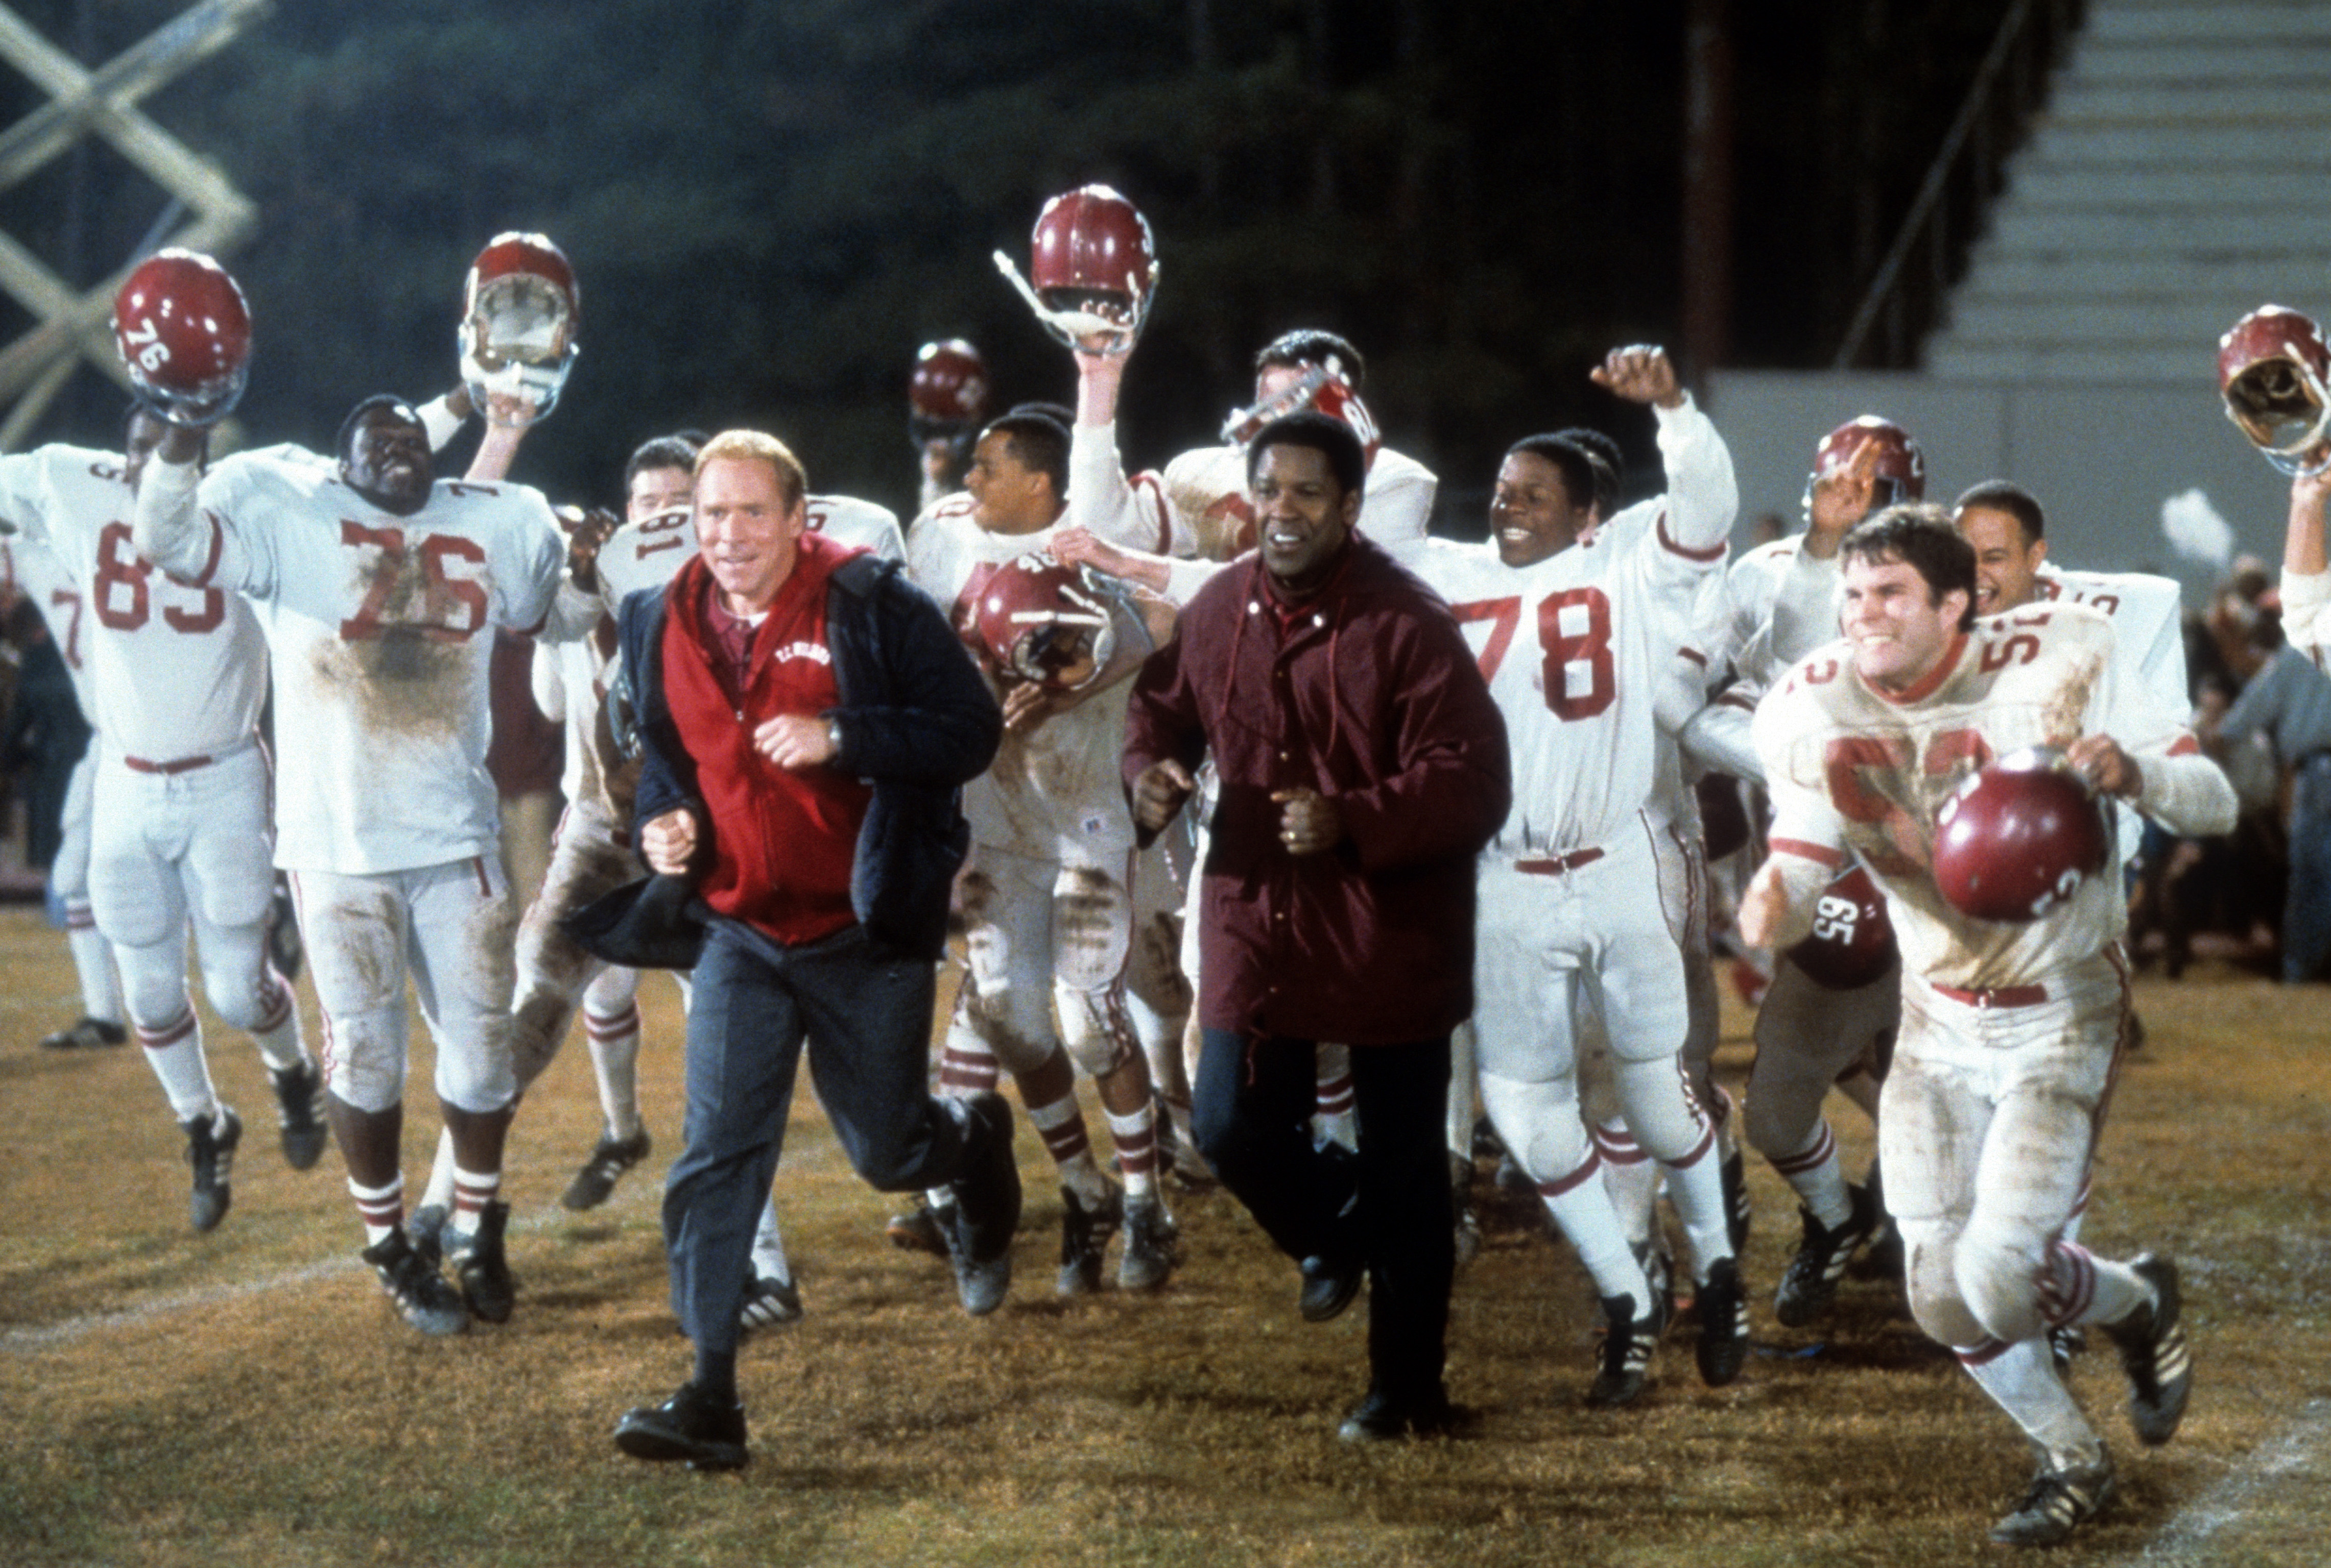 Will Patton And Denzel Washington In 'Remember The Titans'